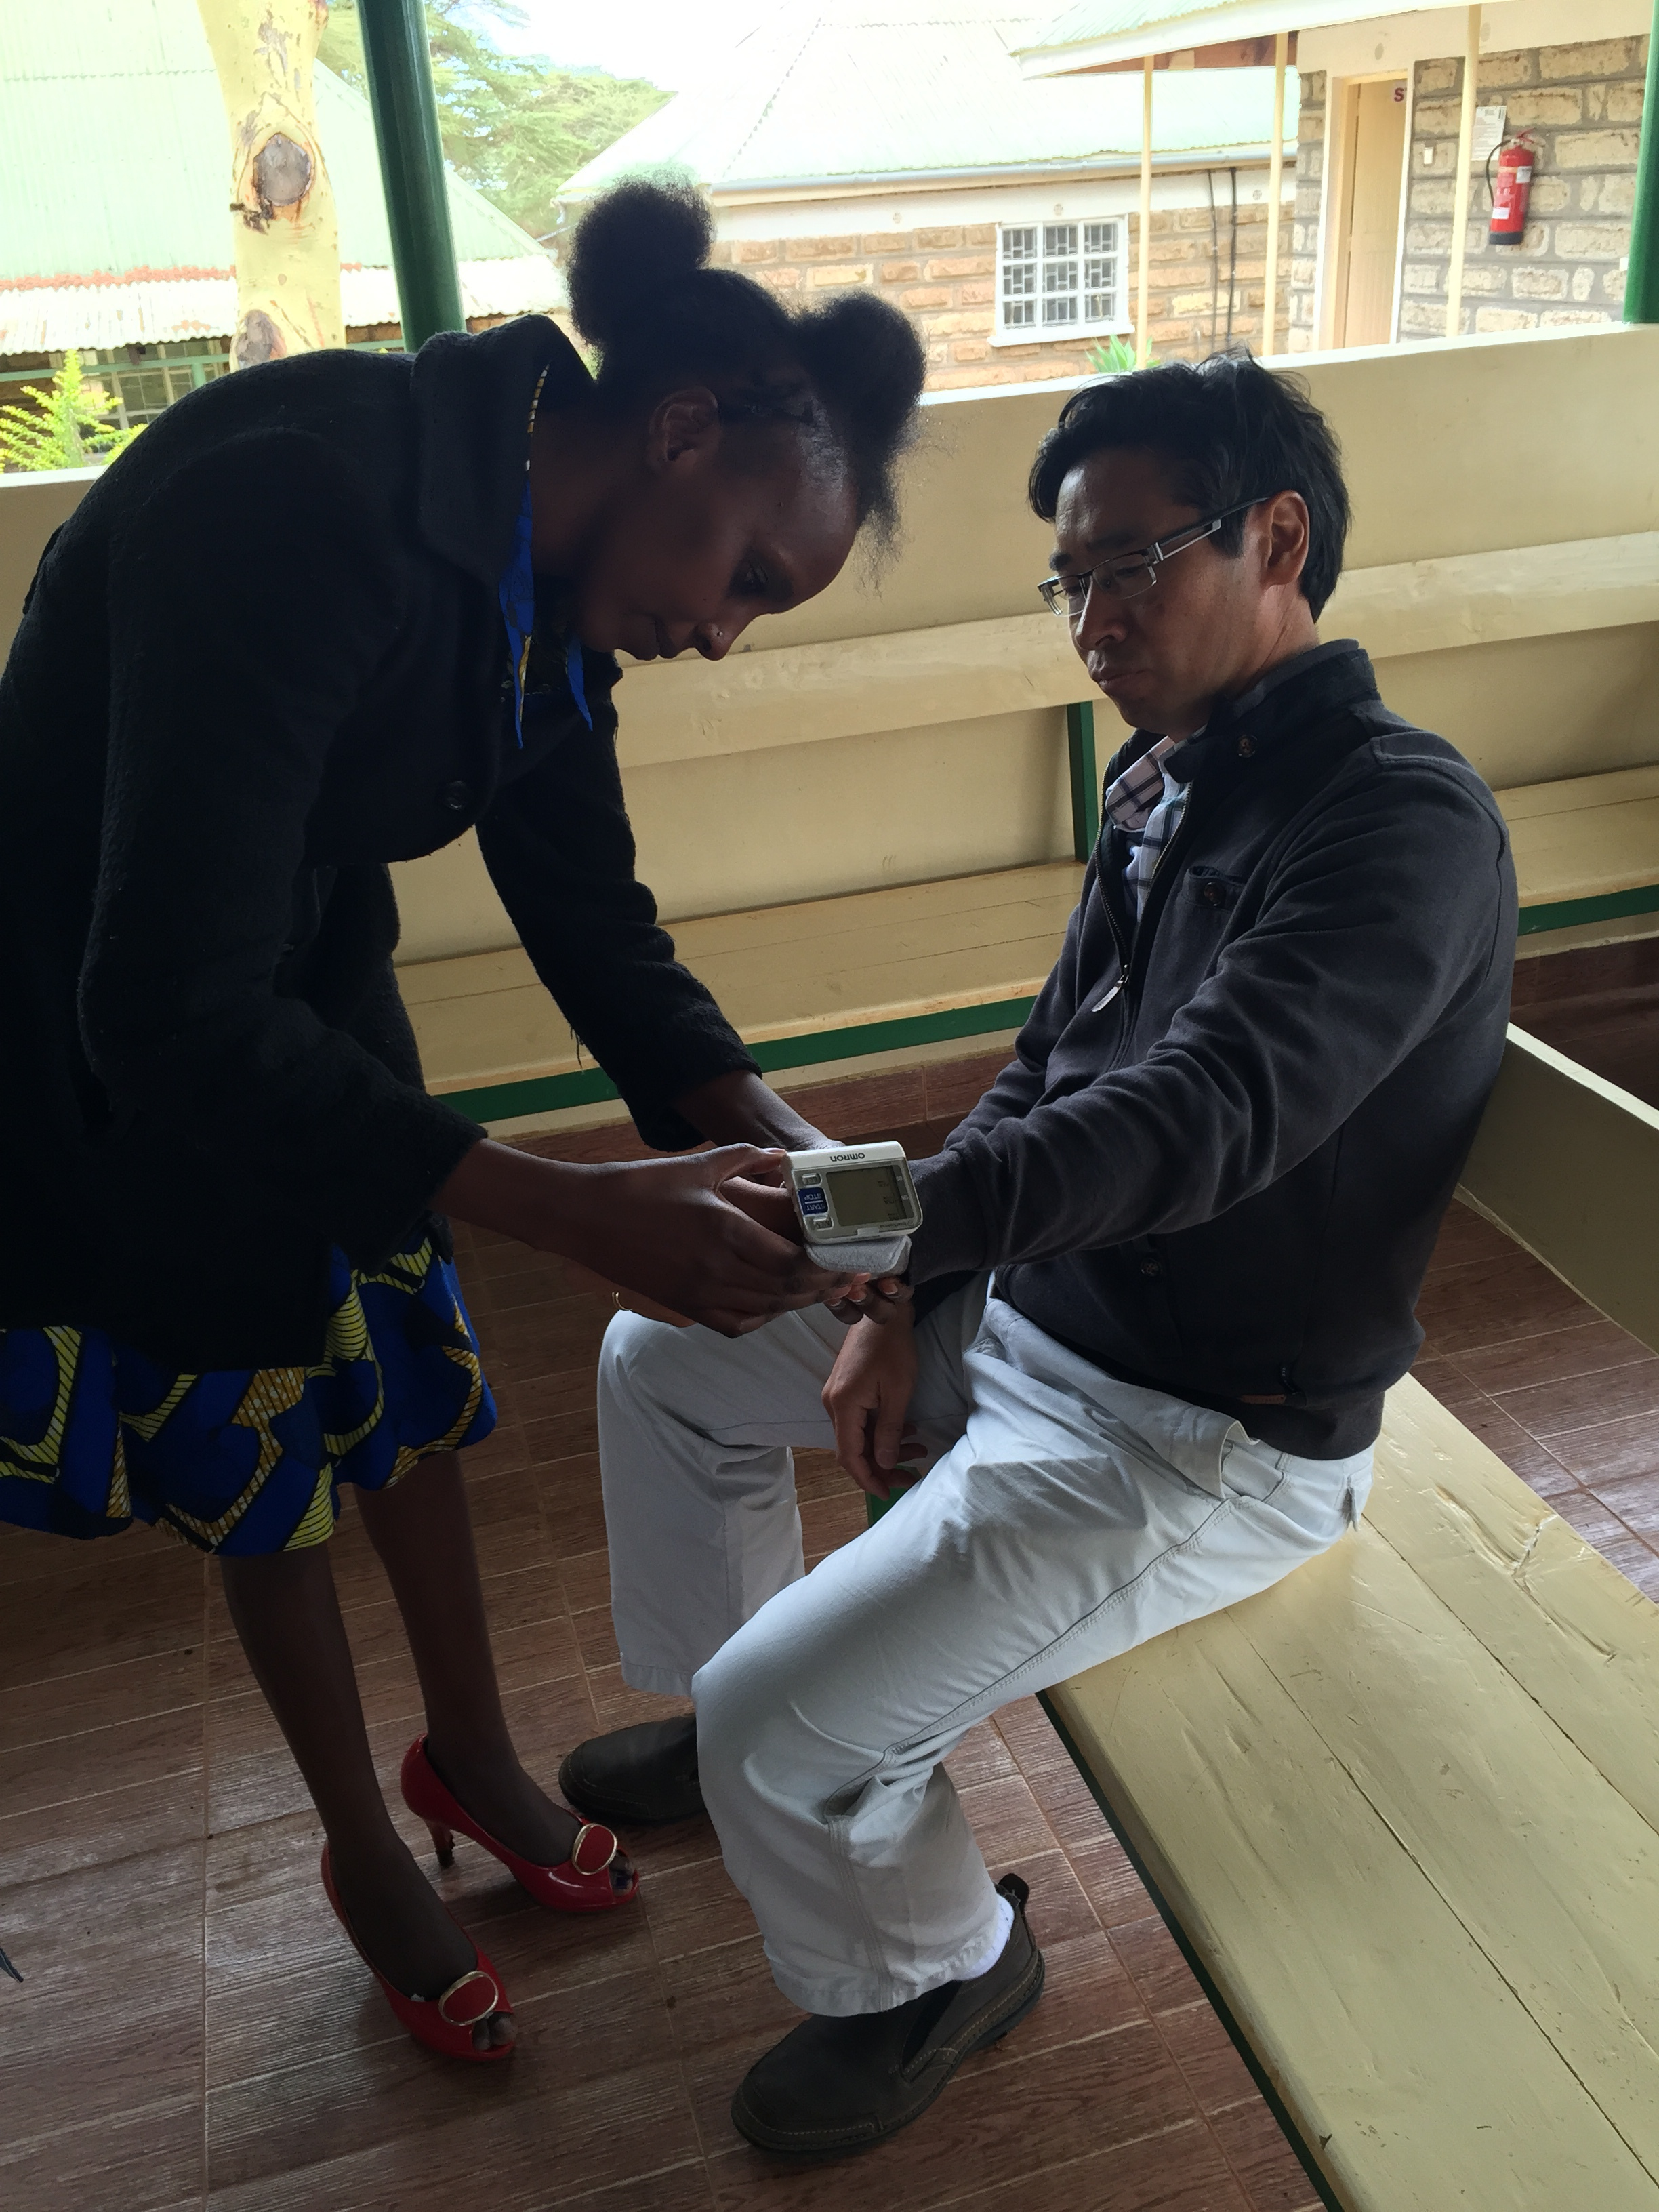 Emily, the community health worker, practising taking blood pressure on Dr. James Aw.